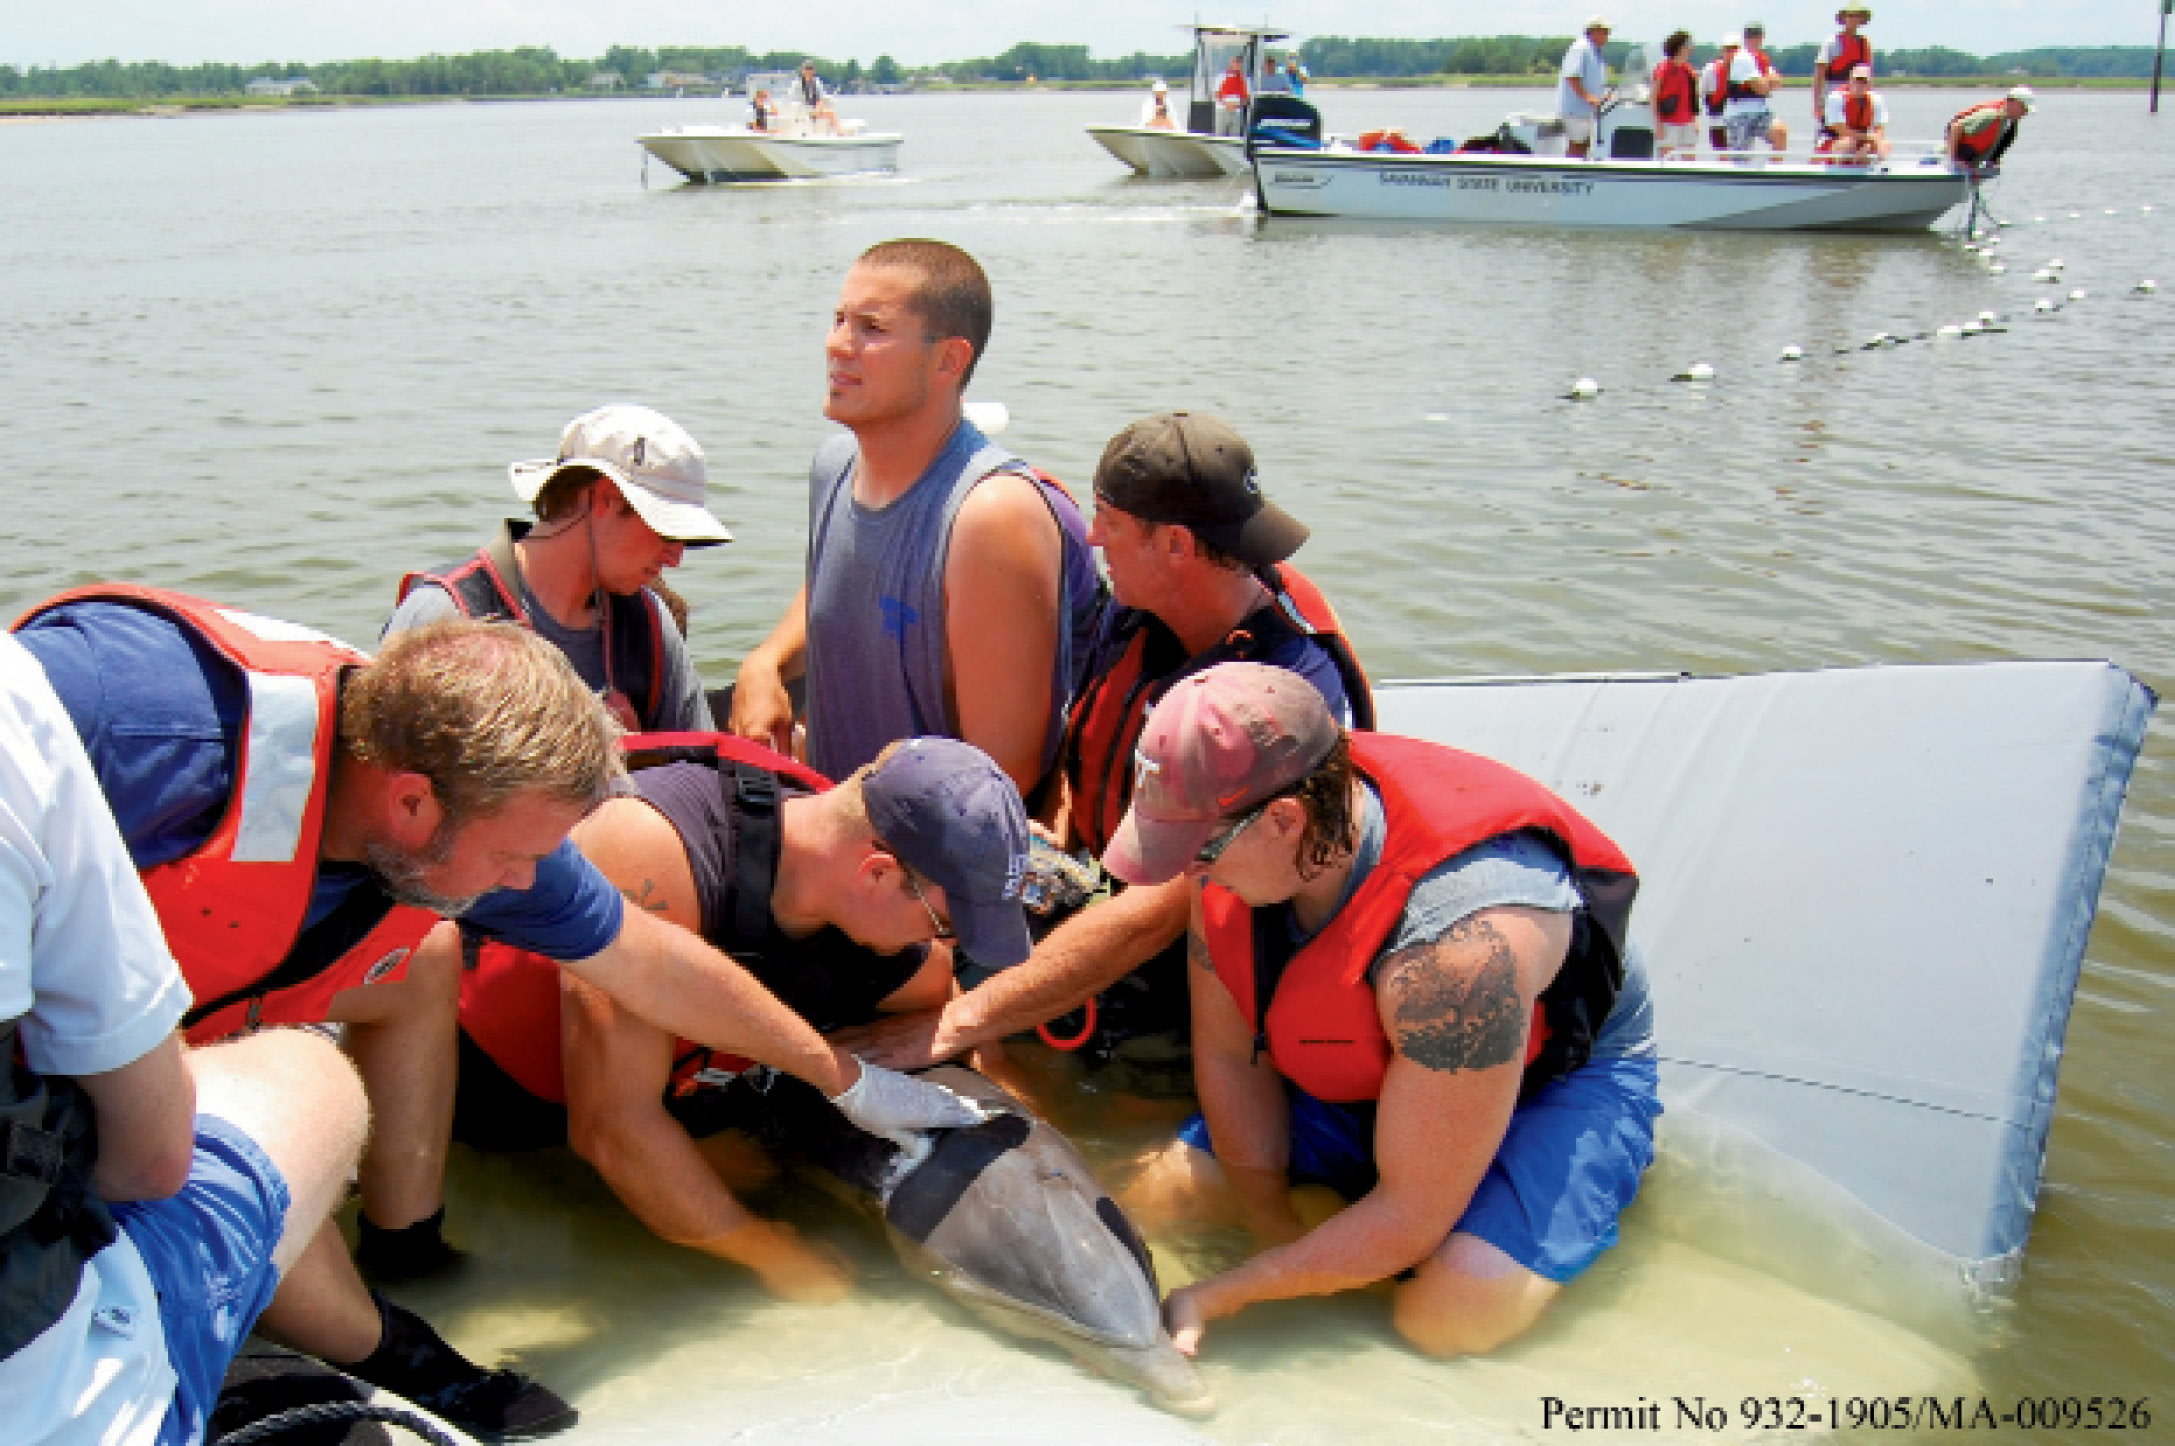 Dolphin R&R (Rescue & Research): National Ocean Service contractors, along with personnel from Harbor Branch Oceanographic, Georgia DNR, Bayside Hospital for Animals, Georgia Sea Turtle Center, UNC Wilmington, and Savannah State University, work to disentangle a sub-adult female bottlenose dolphin.